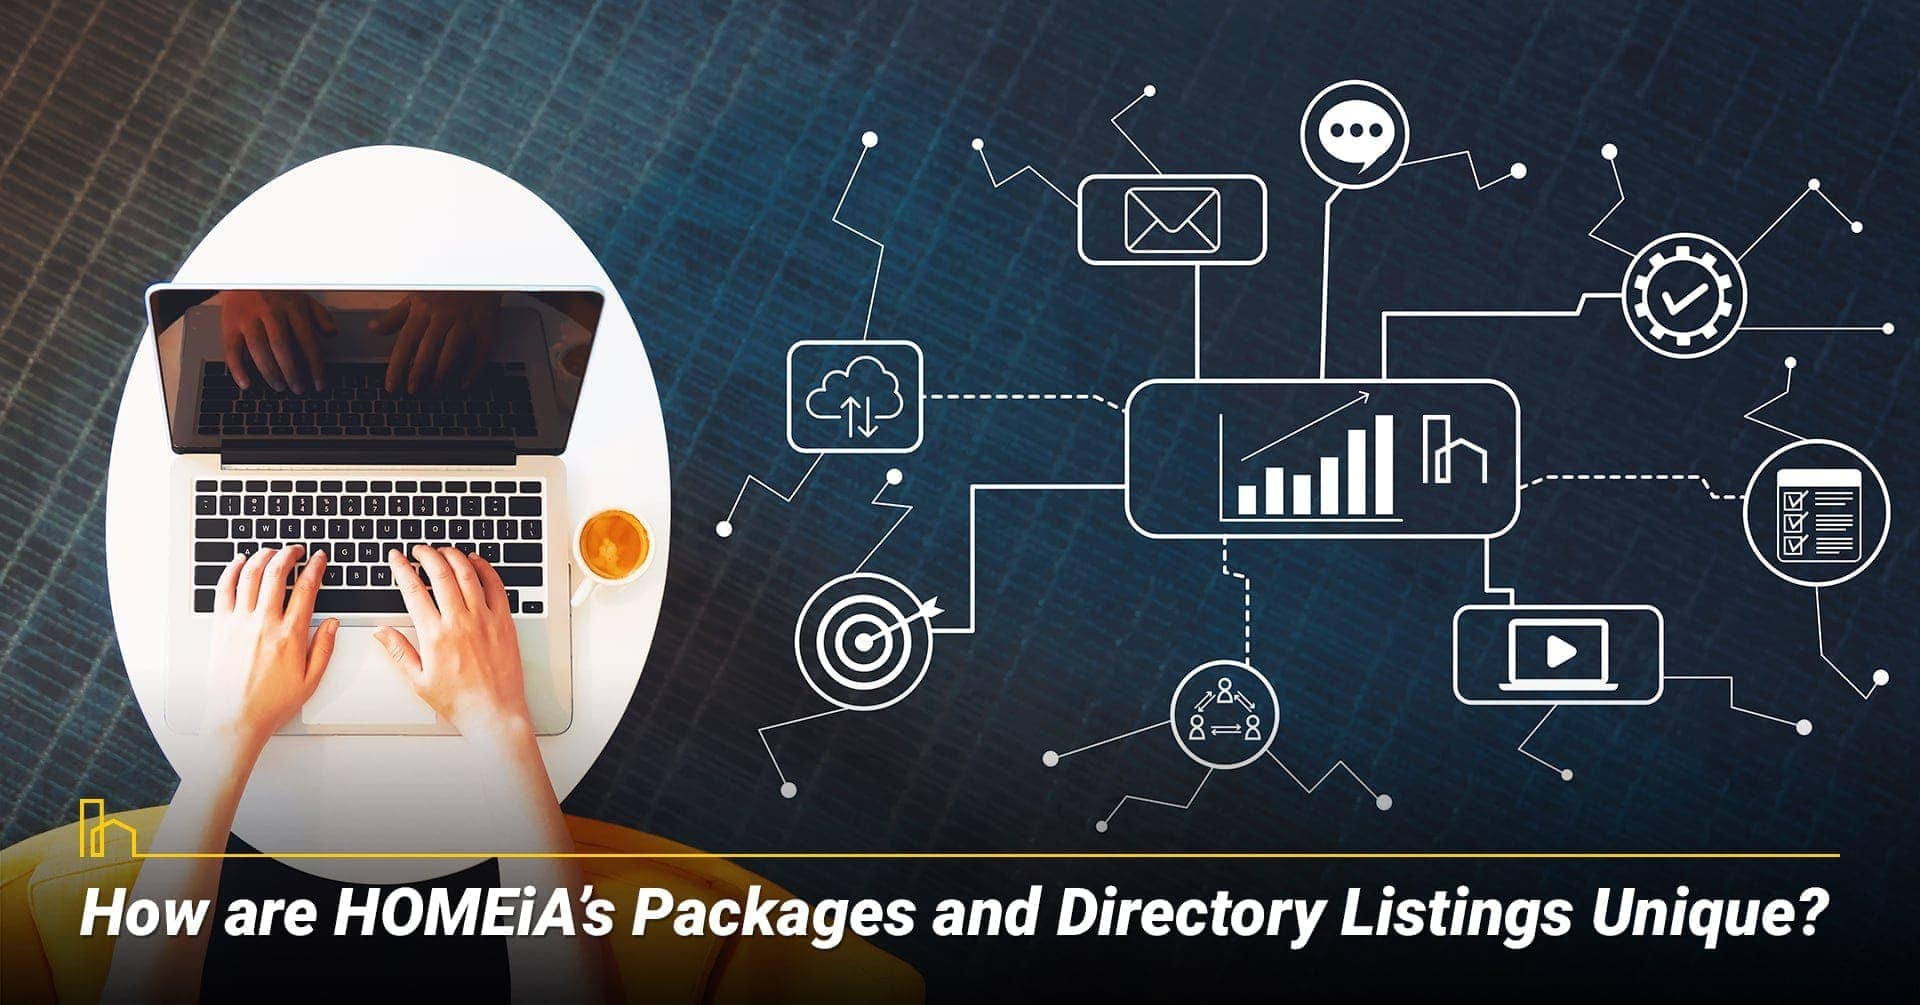 How are HOMEiA's Packages and Directory Listings Unique? HOMEiA offers exceptional services